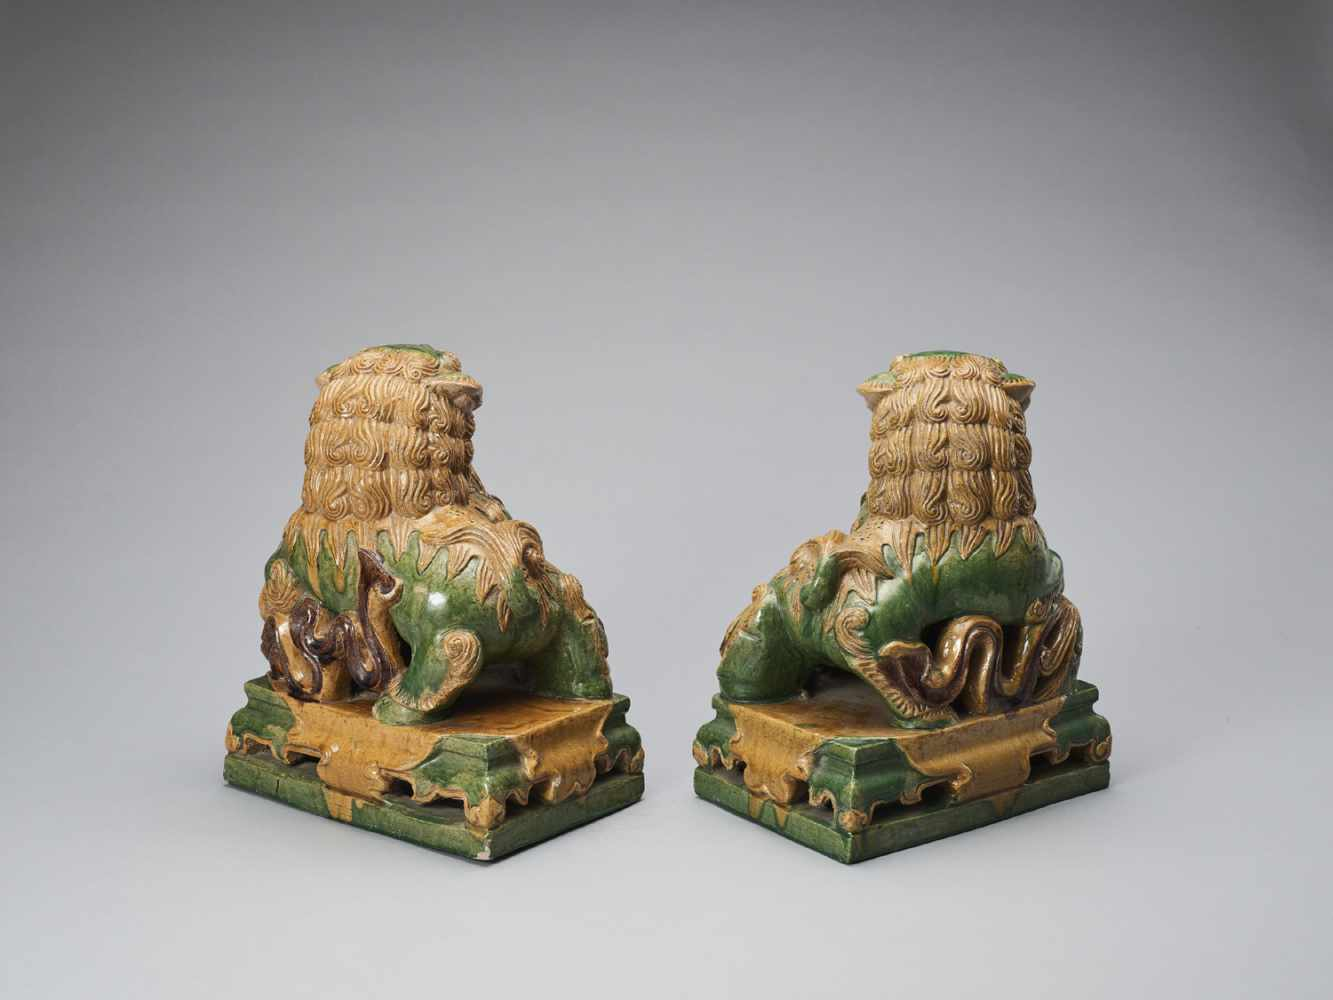 A PAIR OF RETICULATED SANCAI GLAZED POTTERY BUDDHIST LIONS, LATE MING TO EARLIER QING - Bild 5 aus 8